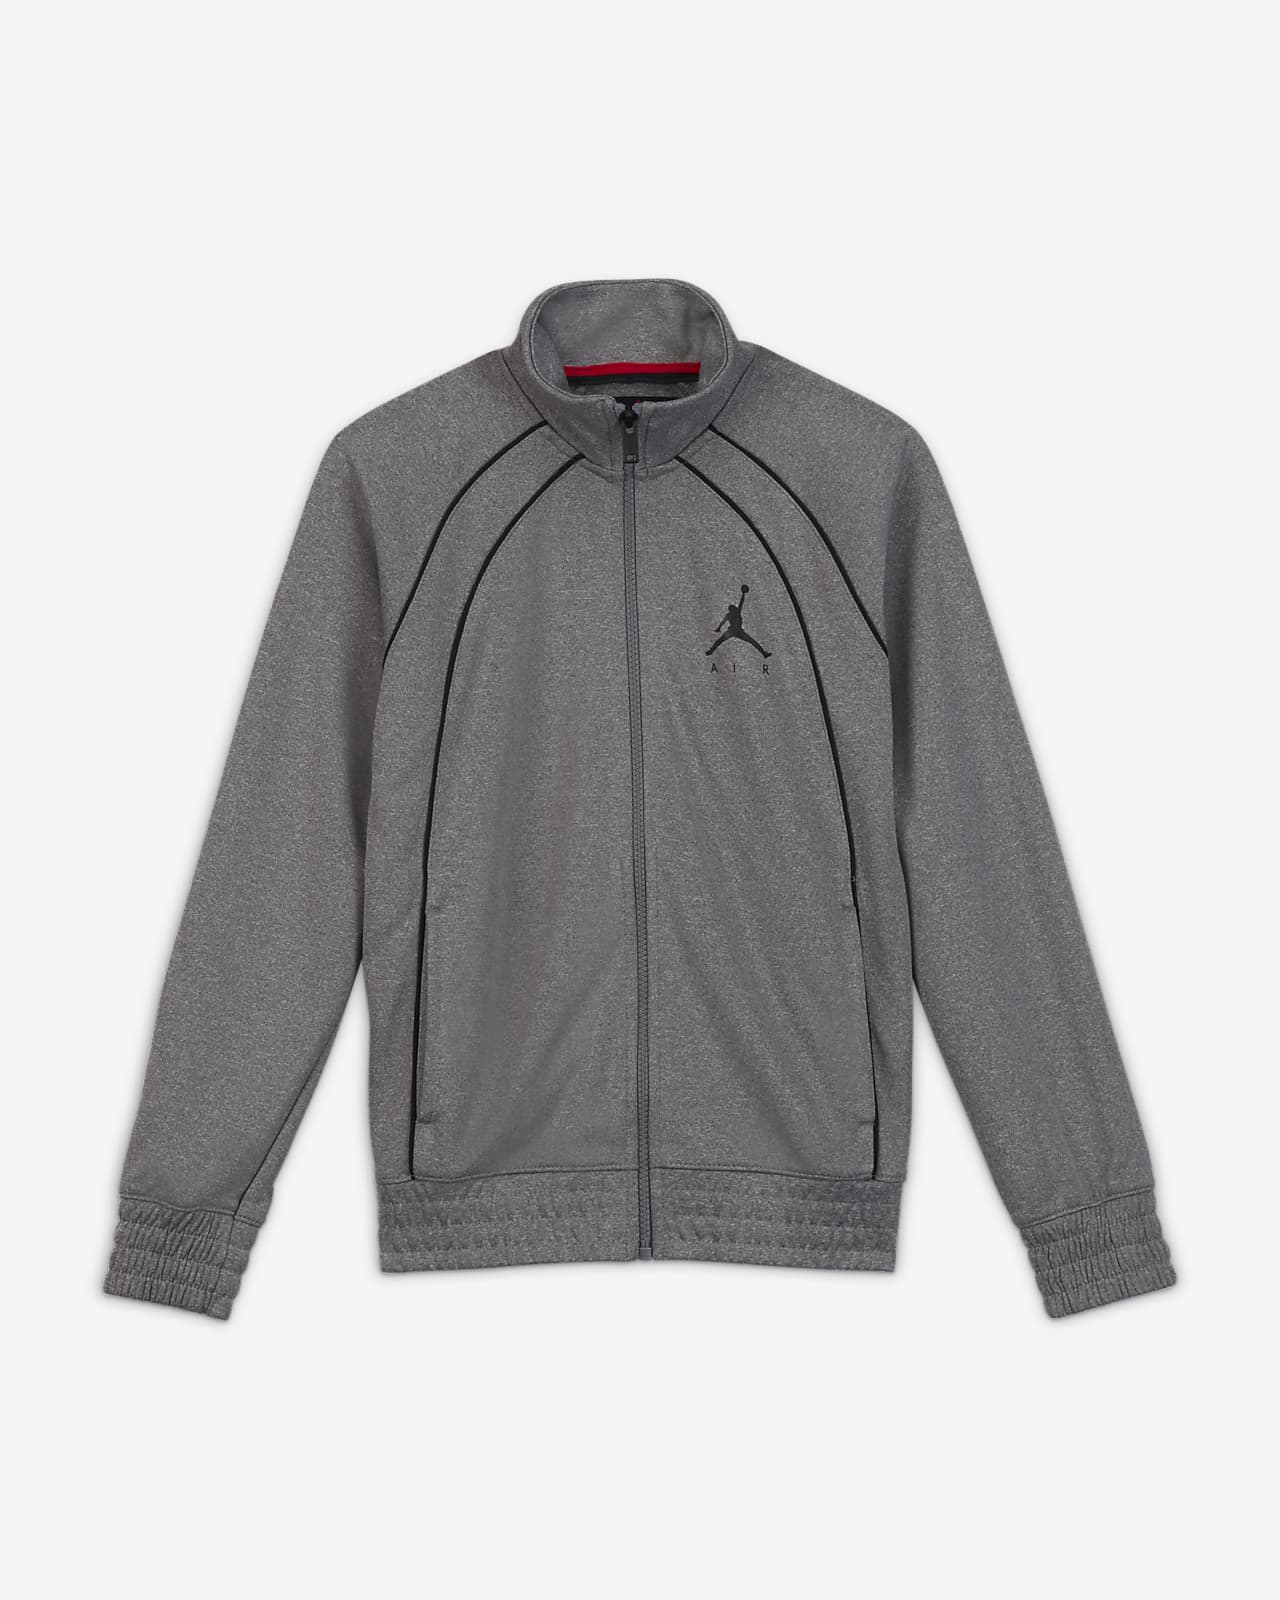 Jordan Big Kids' (Boys') Full-Zip Jacket